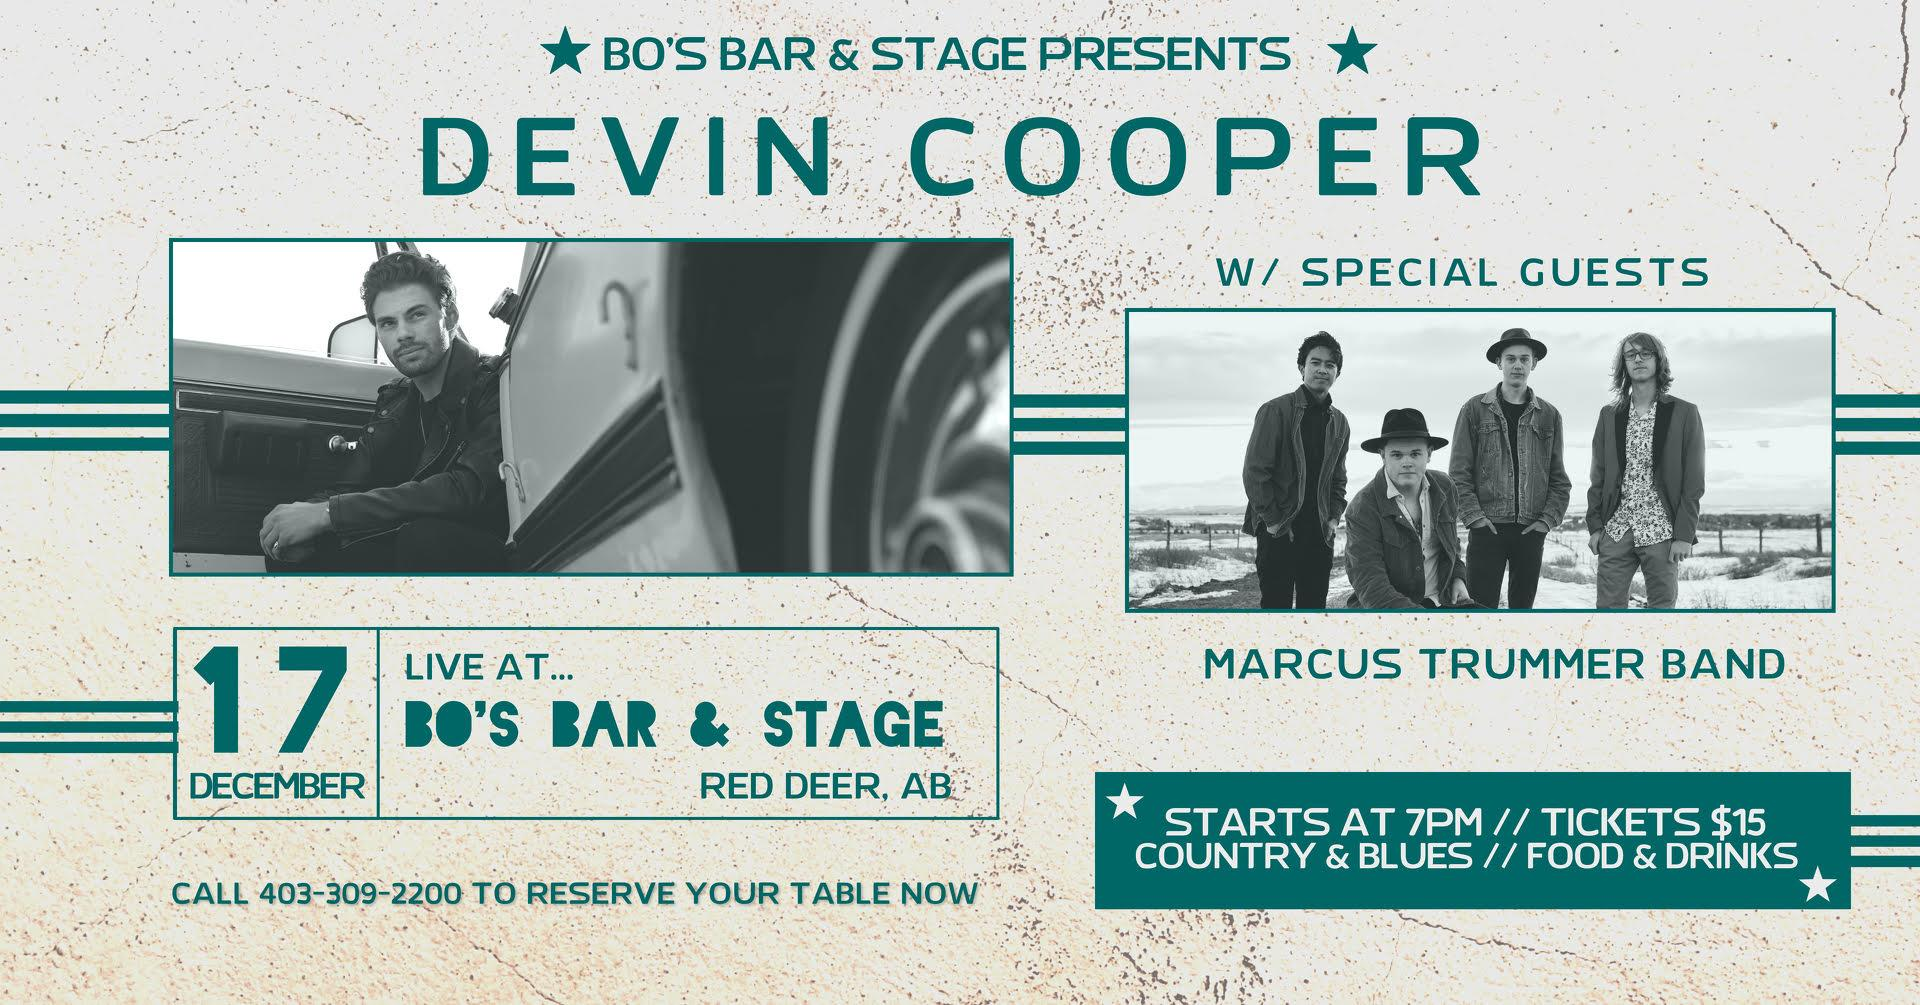 DEVIN COOPER w/ special guests MARCUS TRUMMER BAND